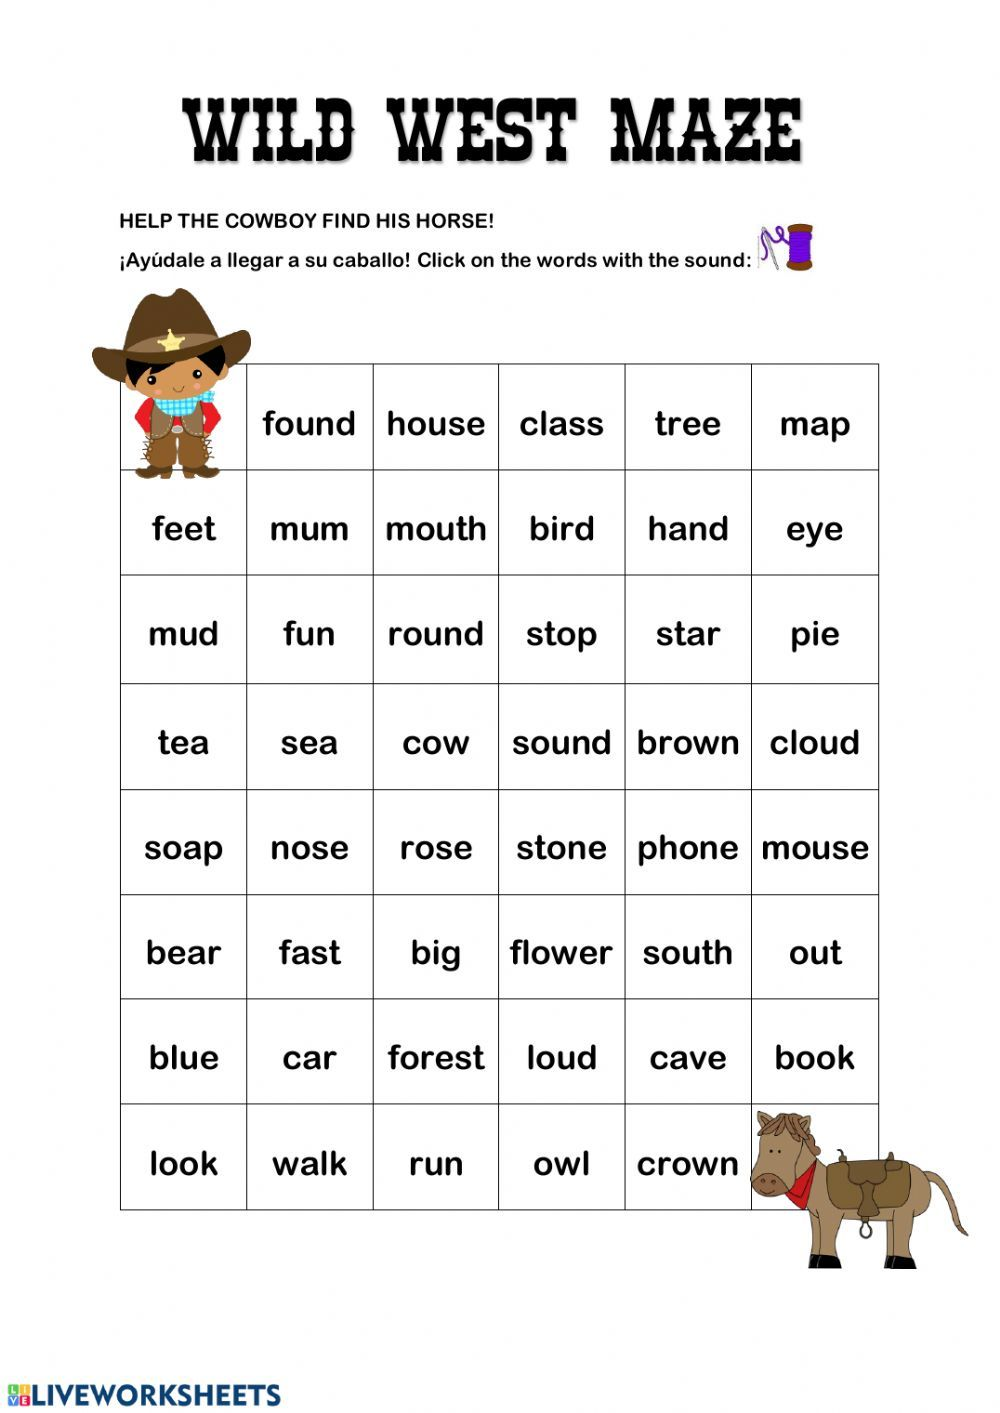 Phonics Online Worksheet For Grade 2 You Can Do The Exercises Online Or Download The Worksheet As Pdf Phonics 2nd Grade Worksheets Words [ 1413 x 1000 Pixel ]